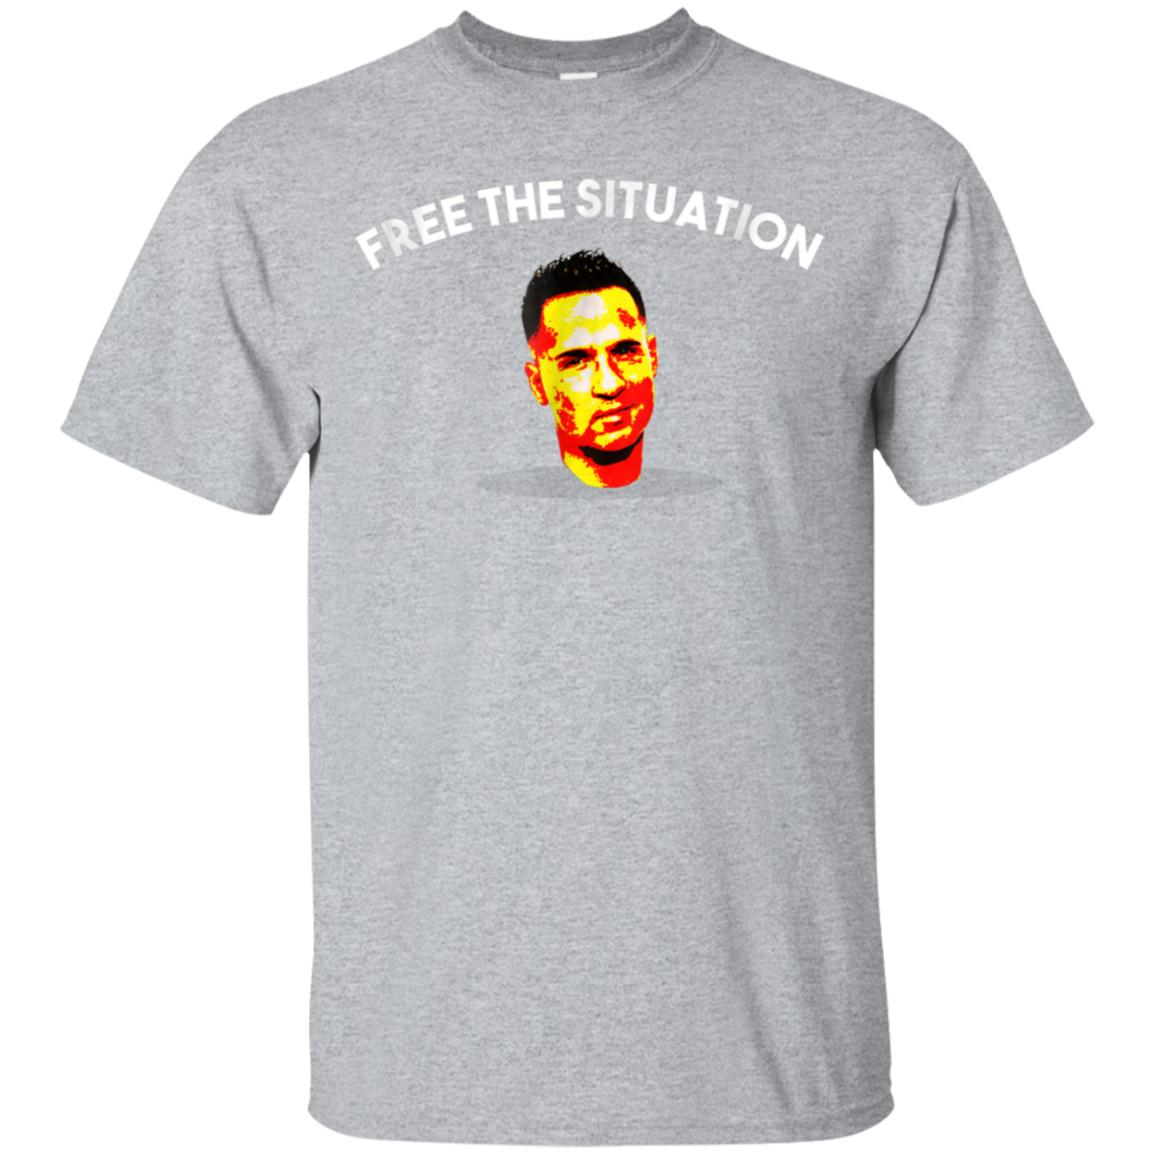 Free Mike the Situation T Shirt Free Big Sitch from Jail 99promocode